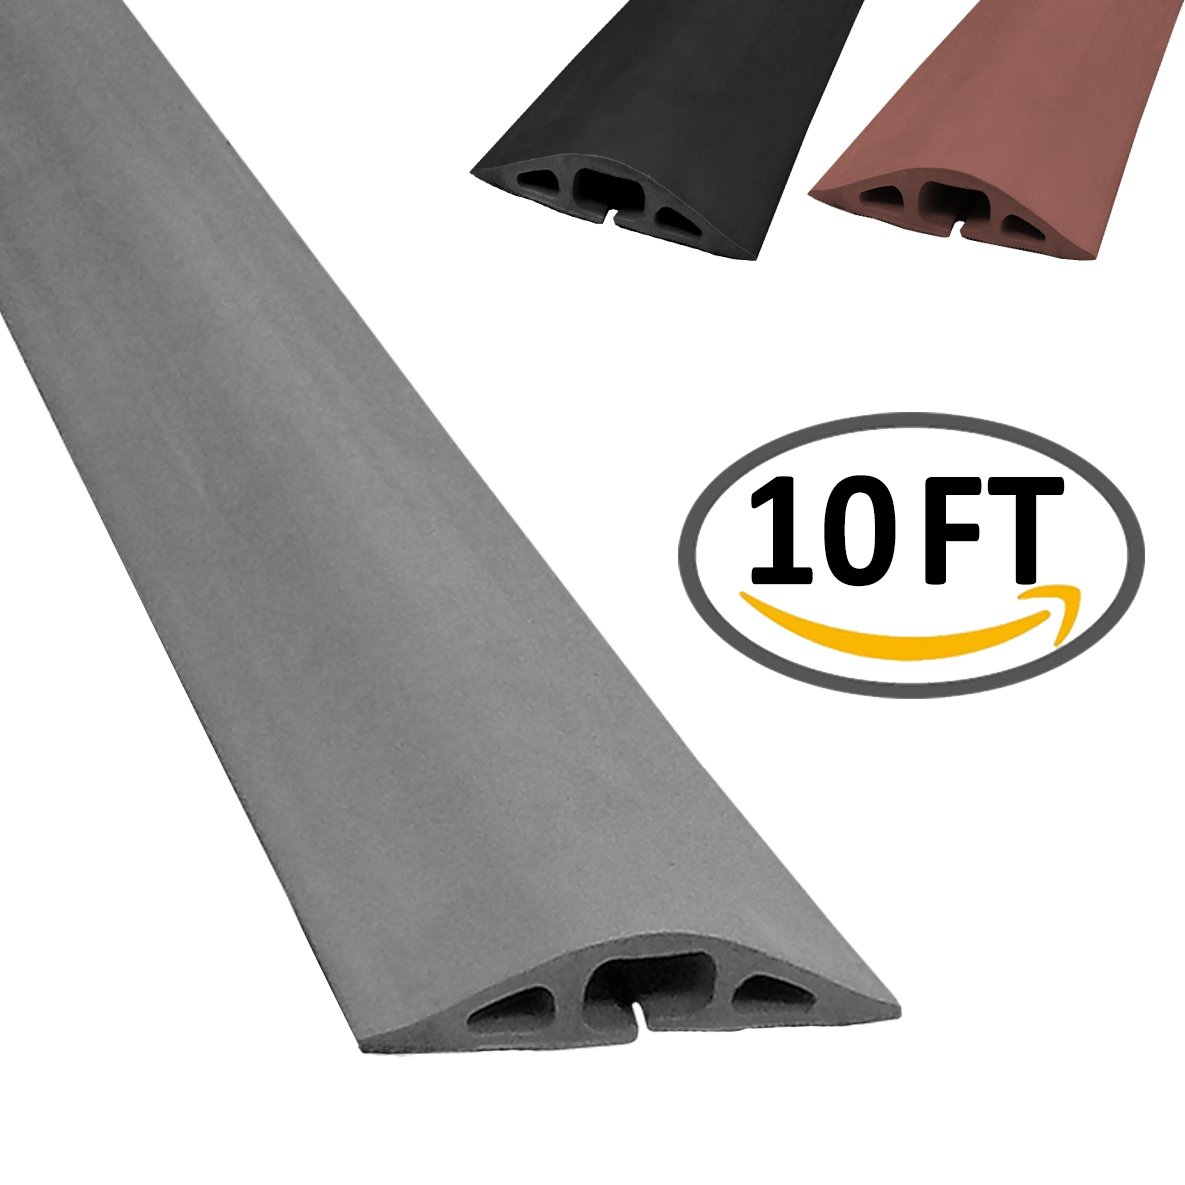 Cheap Duct Cord Cover Find Deals On Line At Alibabacom Wiremold Legrand 5 Ft Non Metallic Hinged Get Quotations D 2 Rubber Length 10ft Color Gray Cable